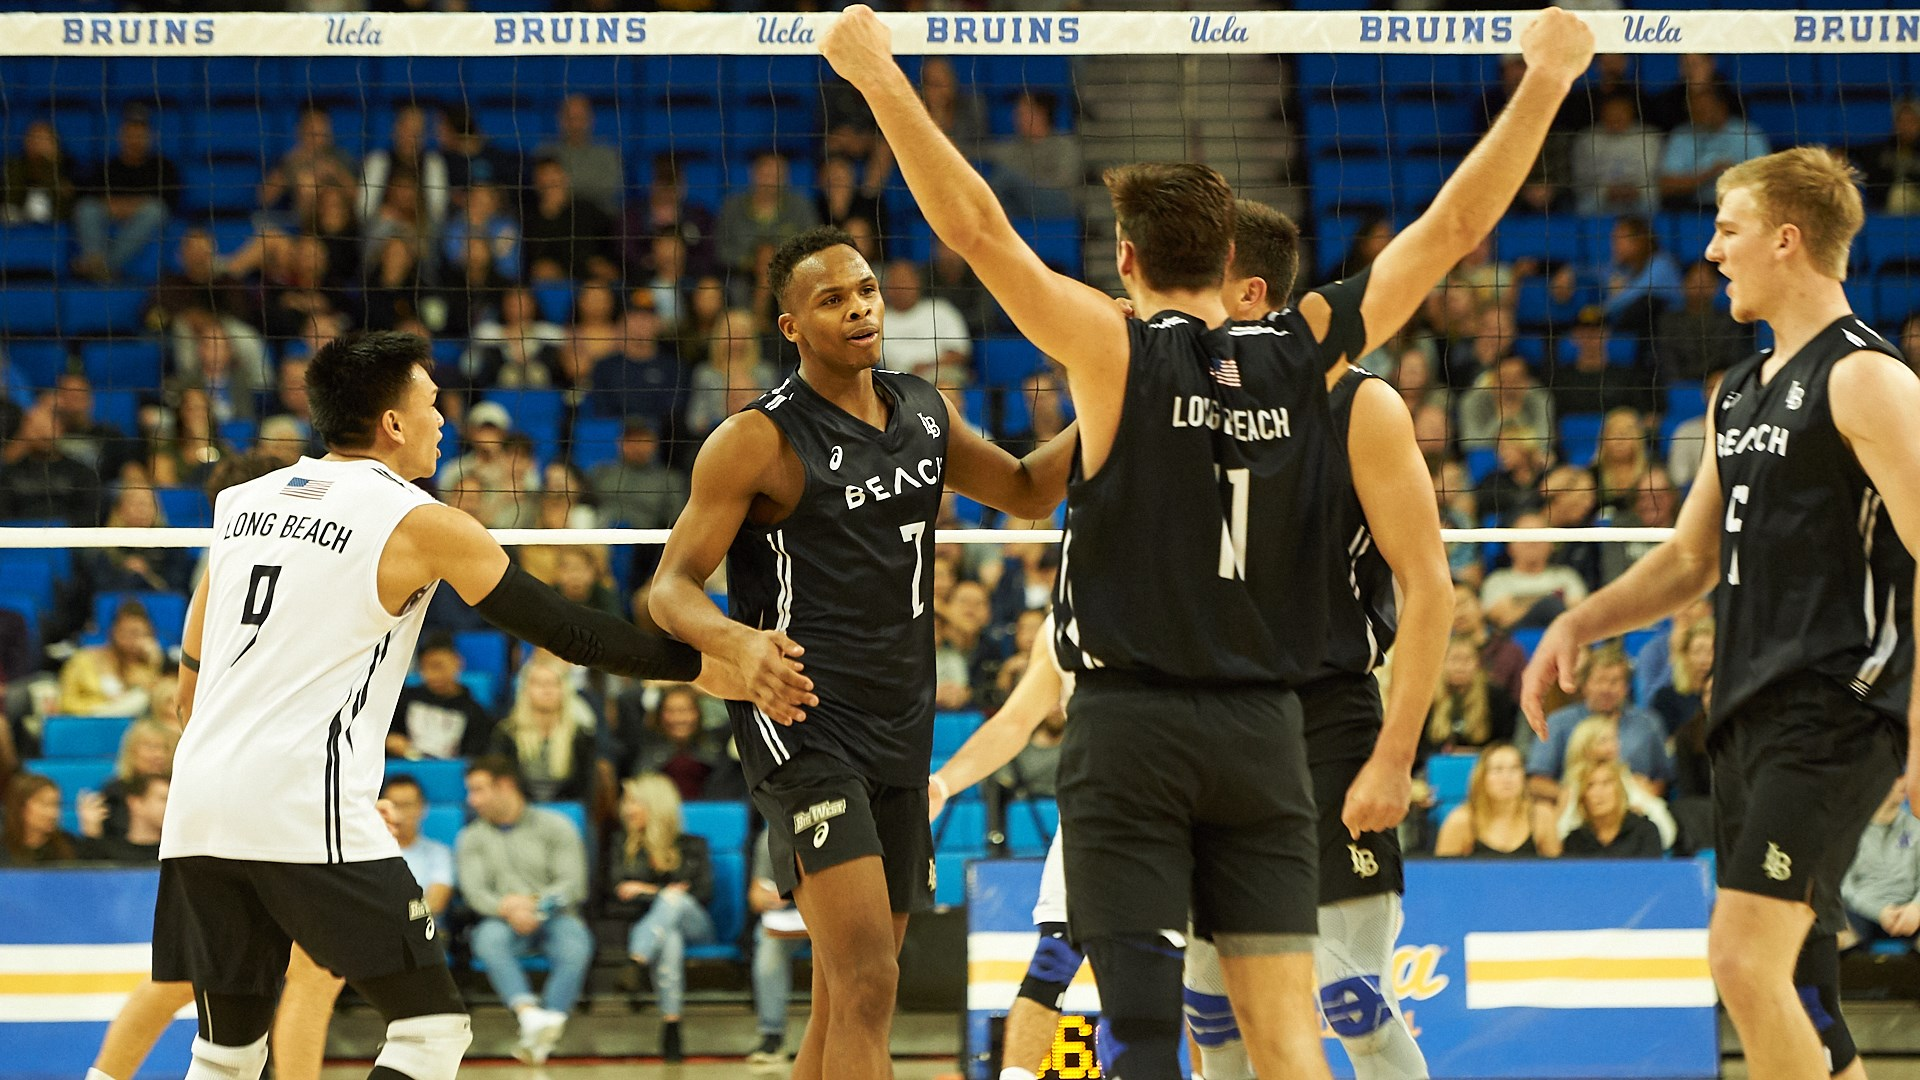 83be283146e1 Top-Ranked Long Beach State Sweeps No. 6 UCLA - Long Beach State ...